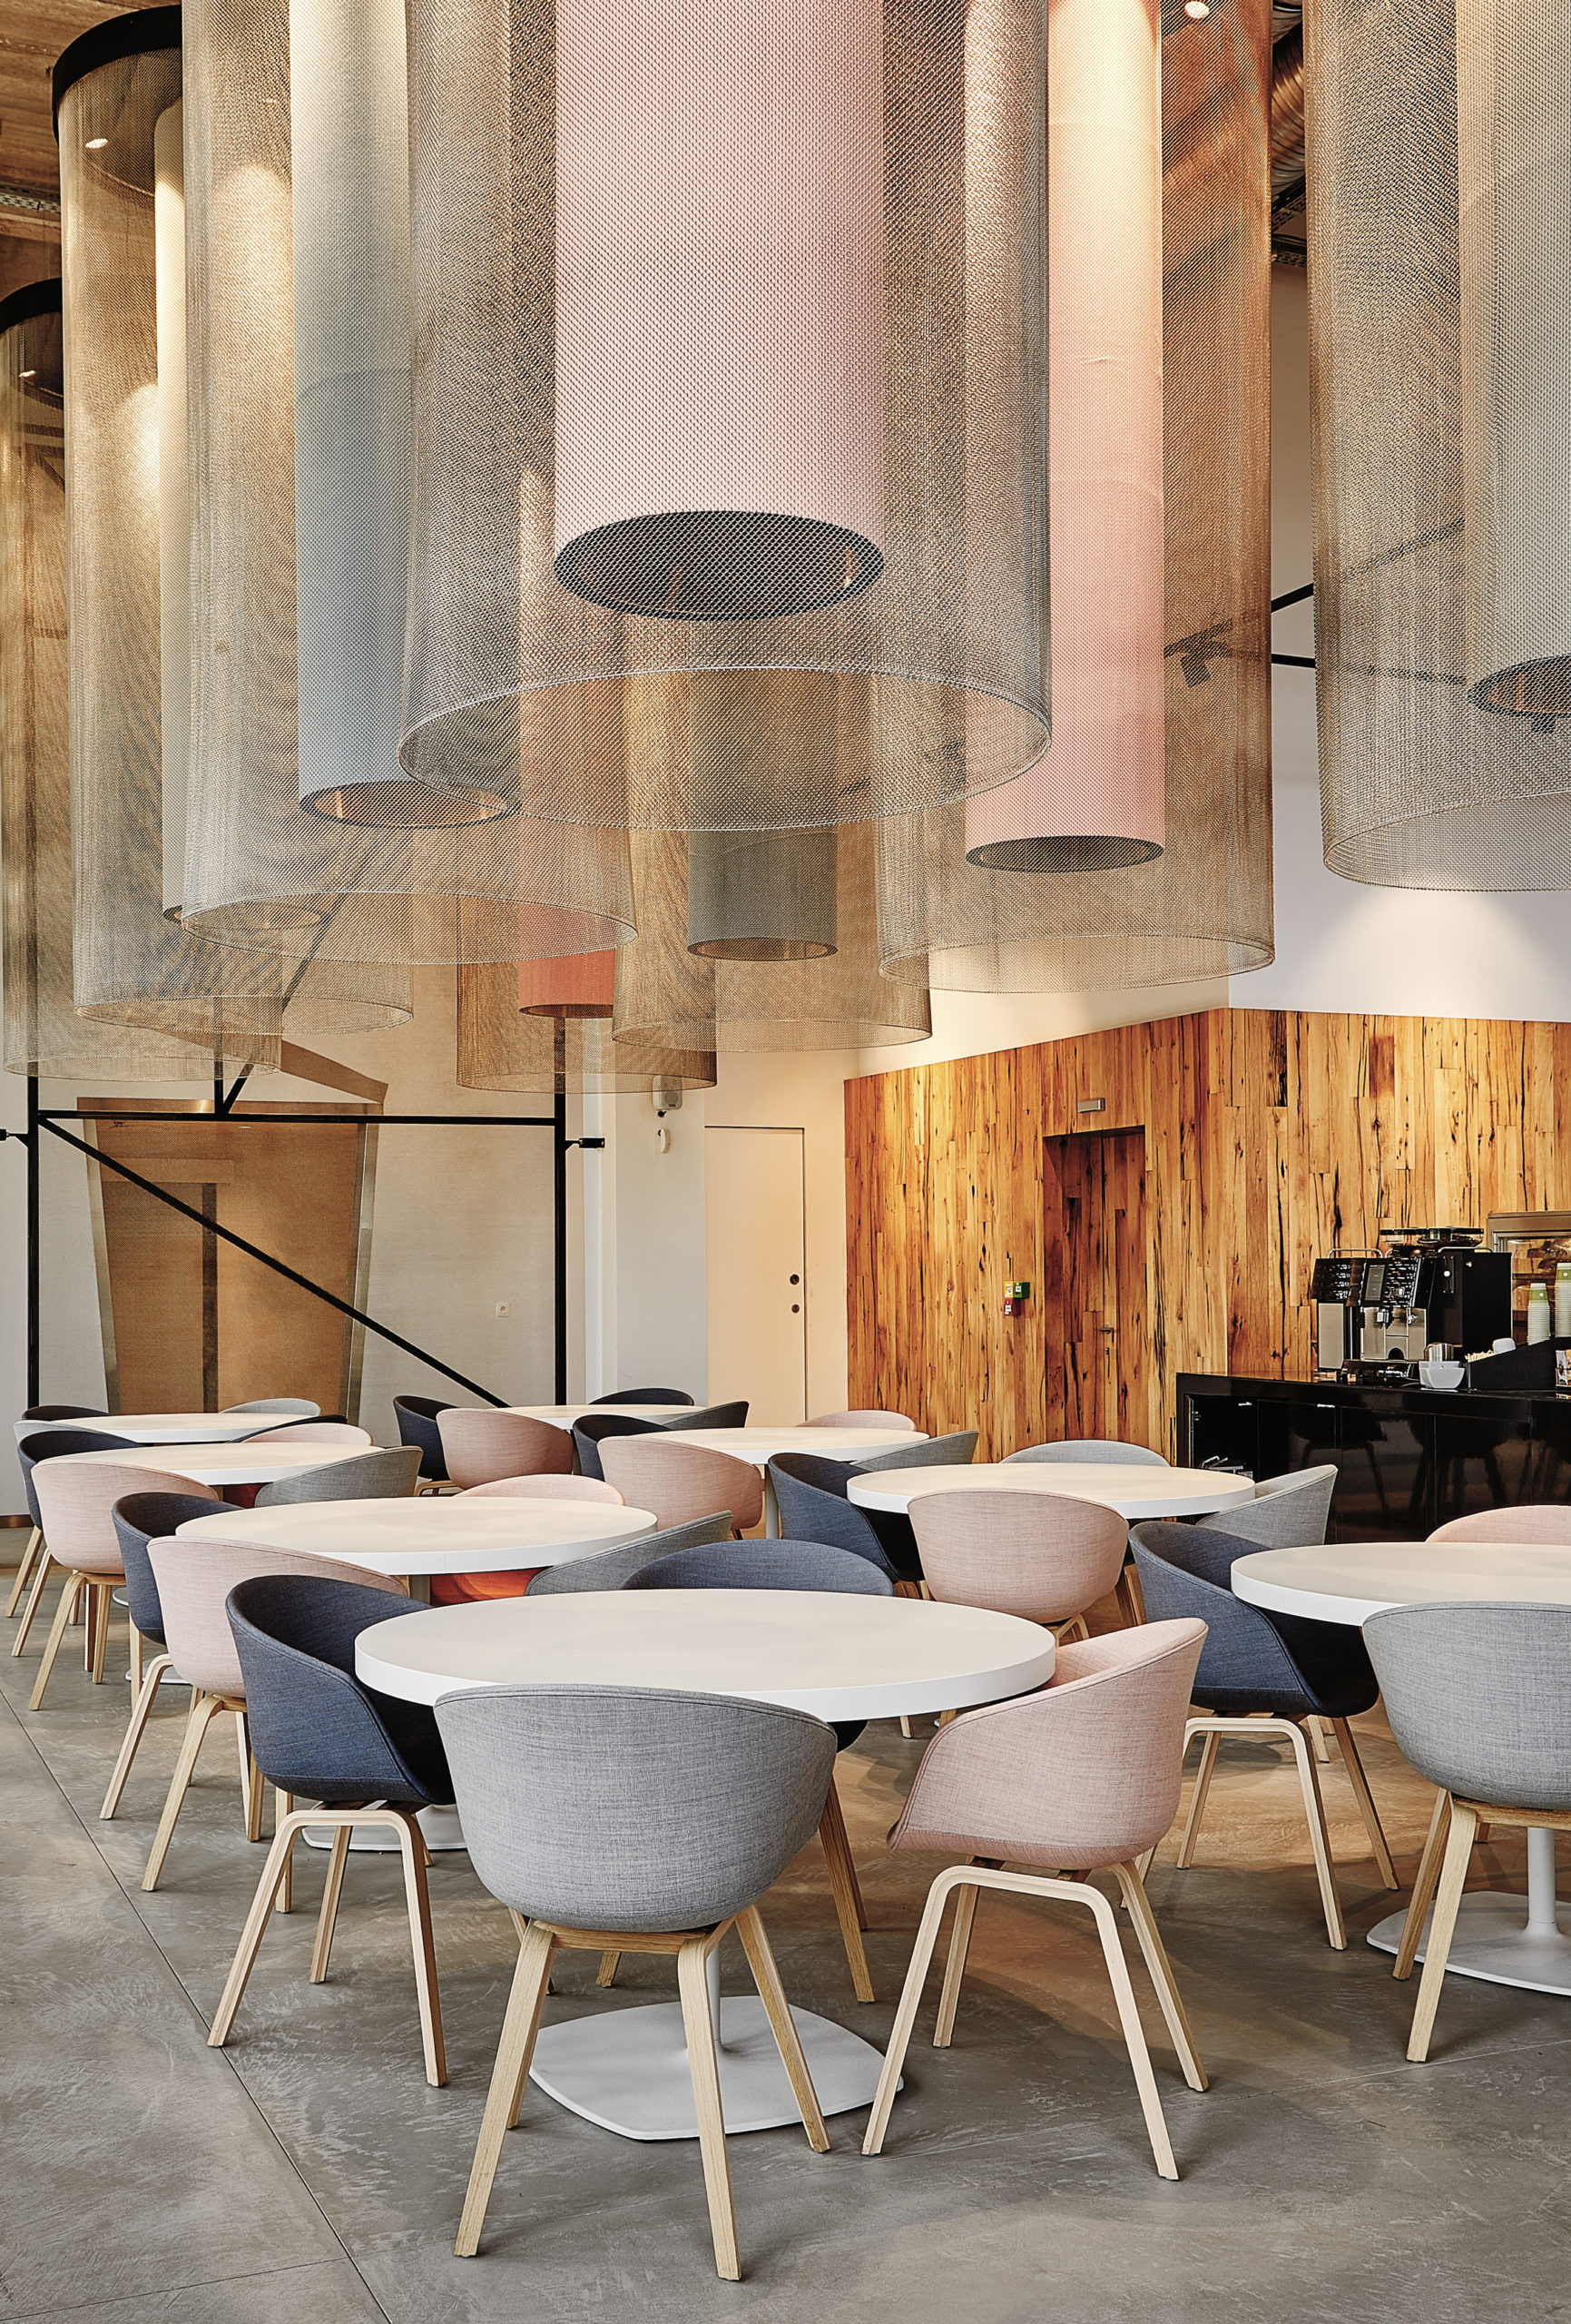 Ezplanade : an exciting new restaurant in Brussels